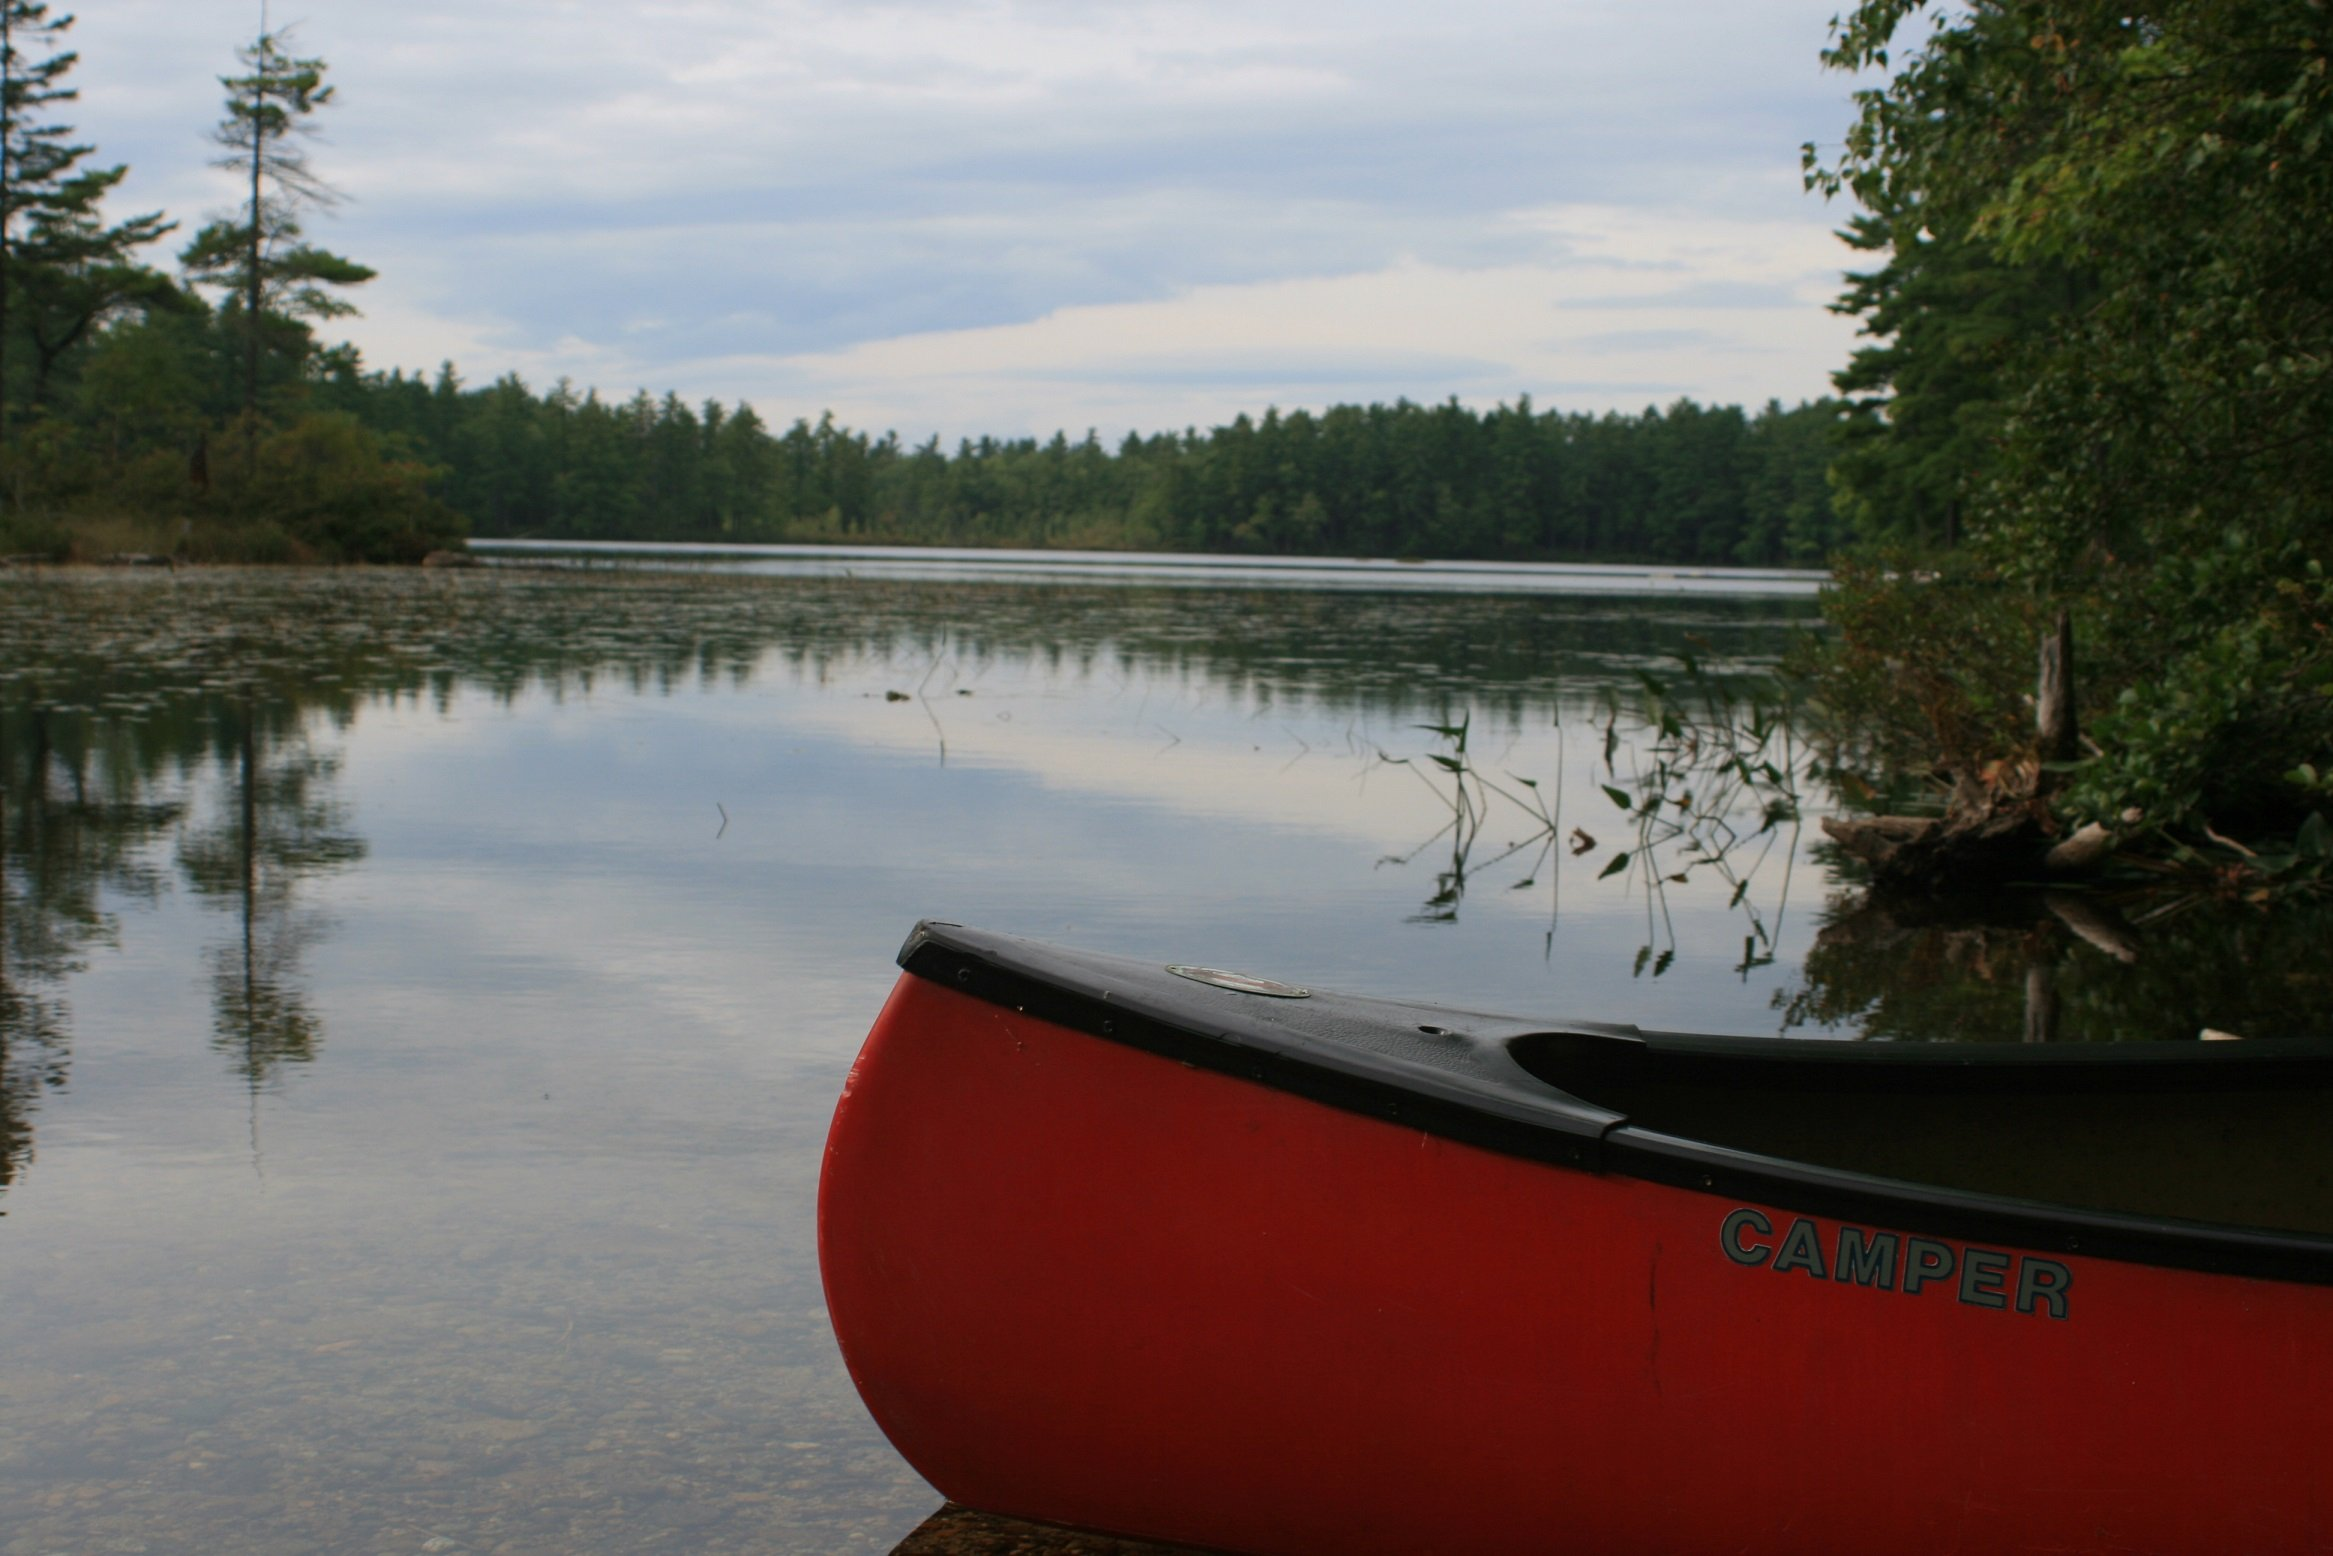 Recreational add-on packages available including canoes, camp kitchen kits, paddleboards and fishing supplies.